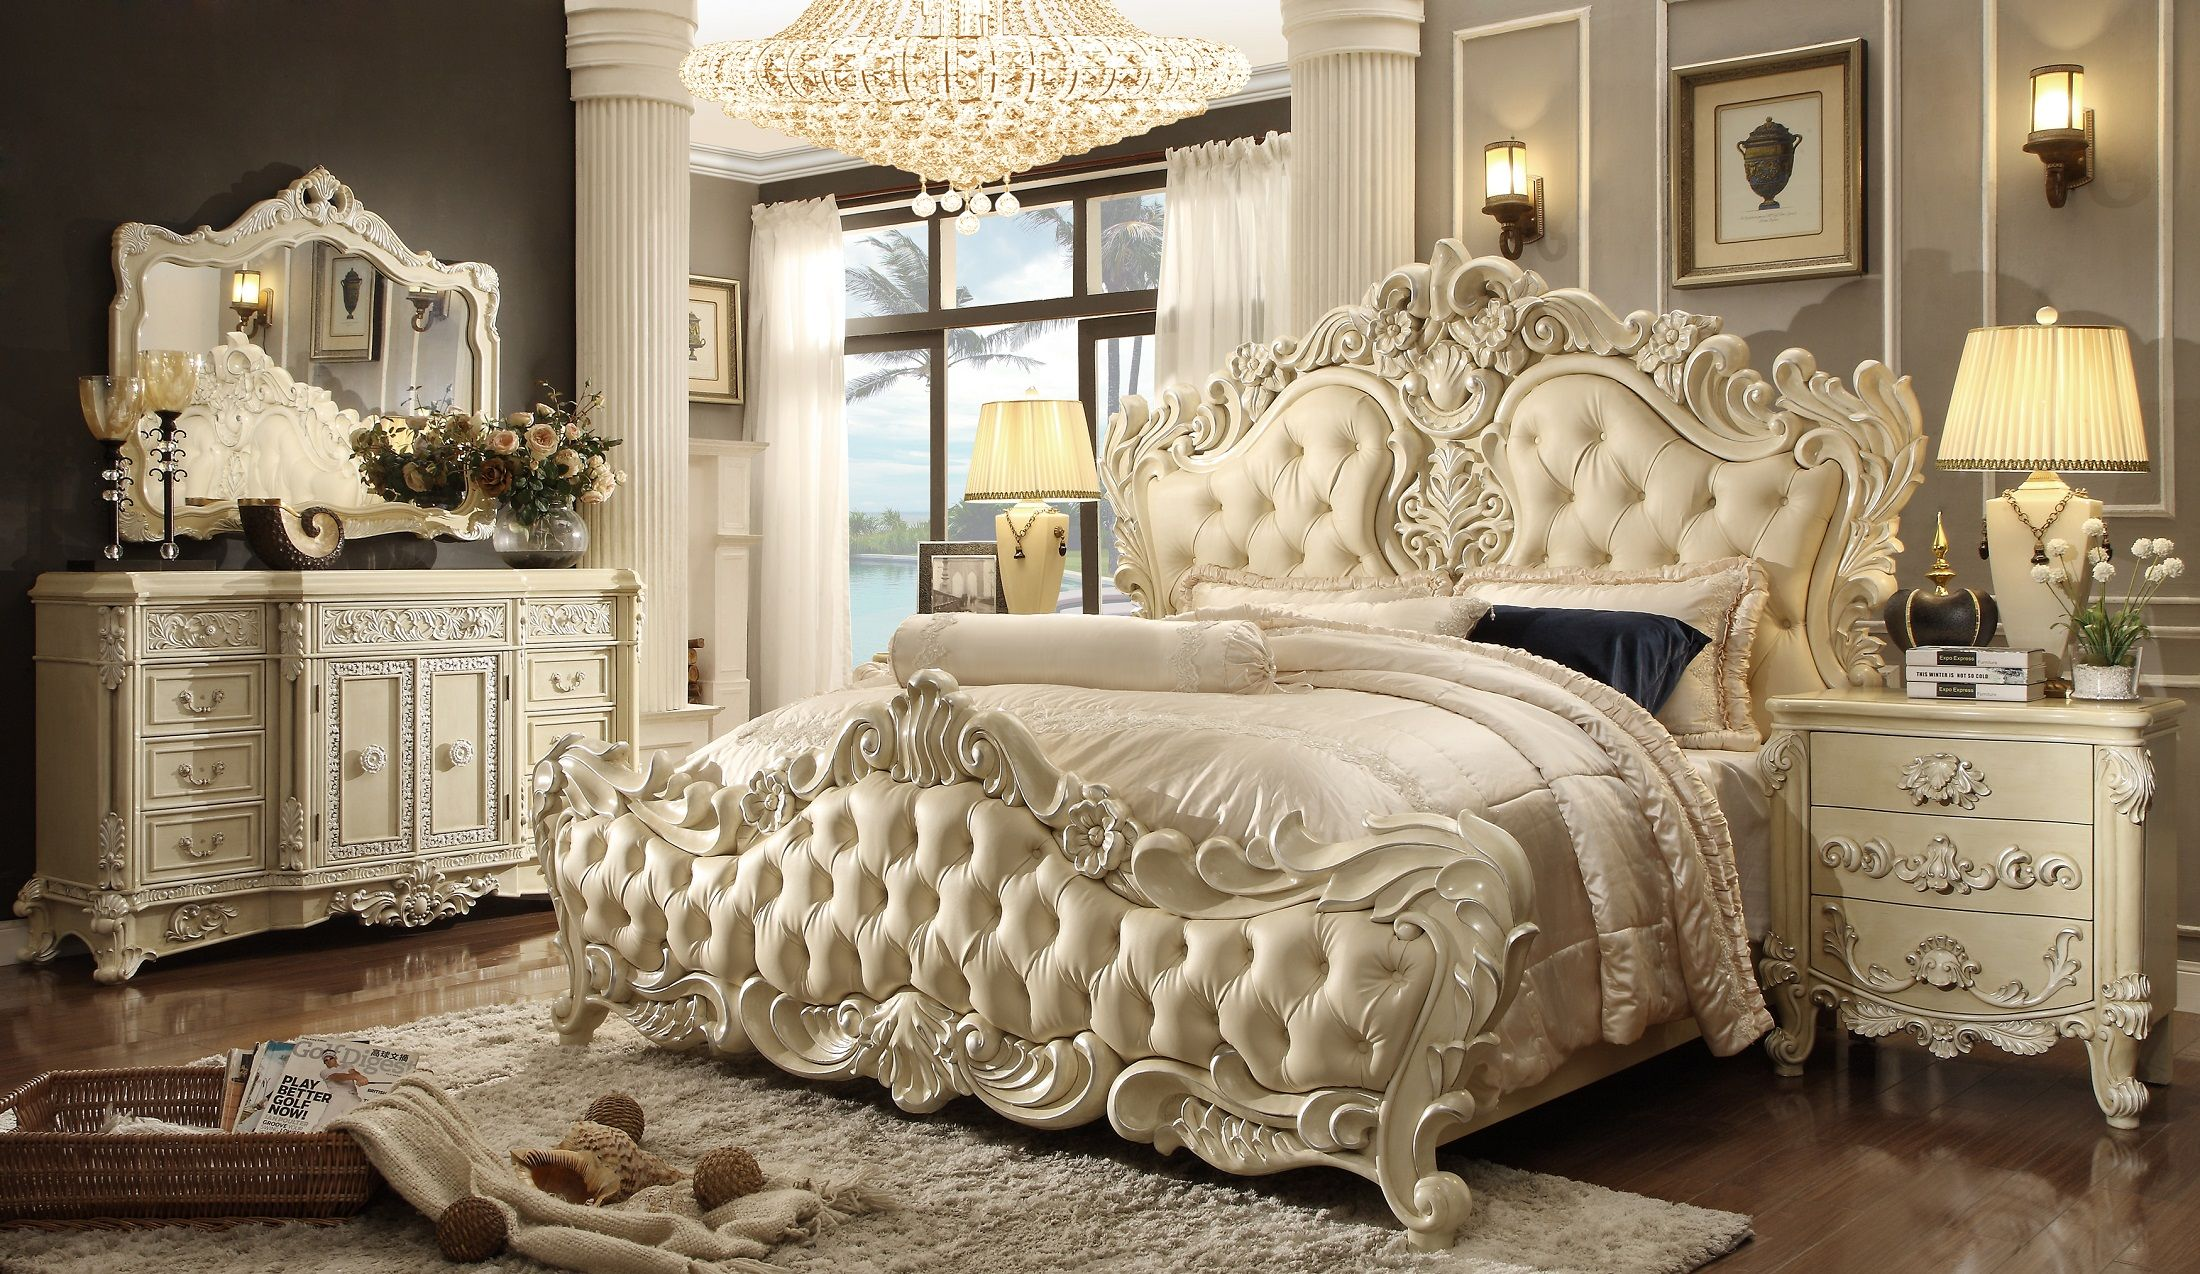 Antique White Bedroom Furniture #38: 1000+ Images About Master Bedroom On Pinterest | White Canopy, Traditional And Antiques